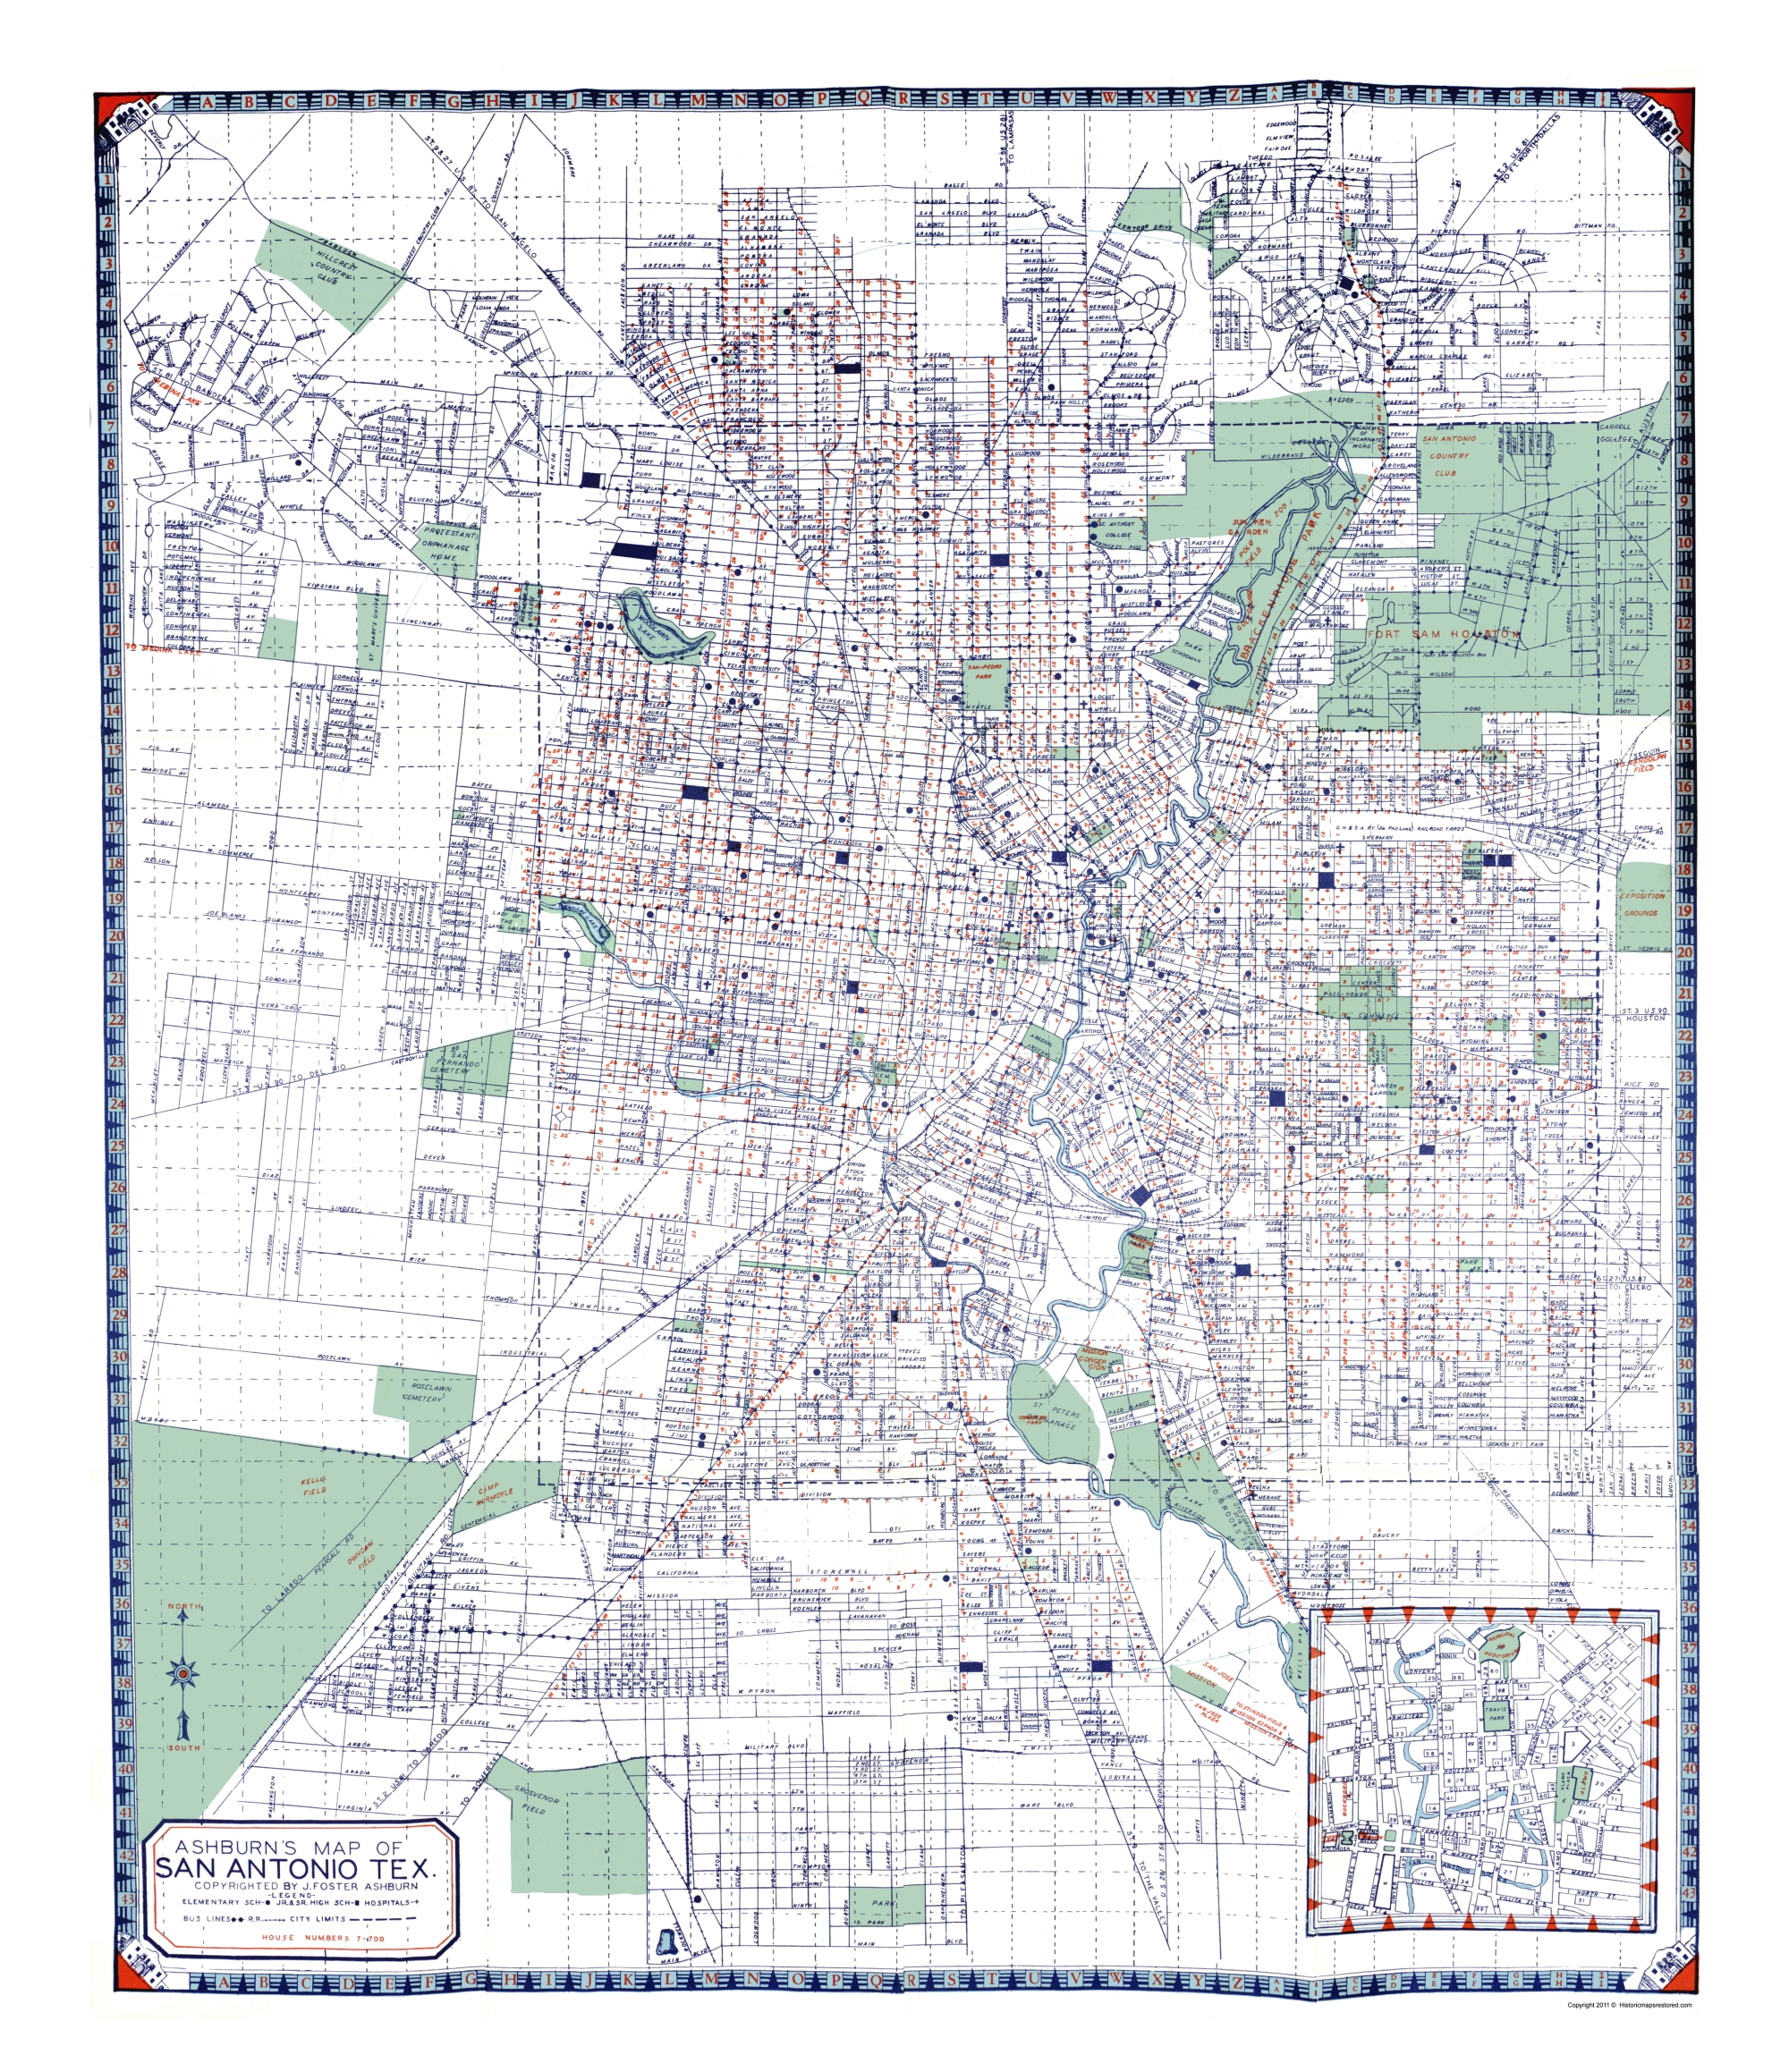 San Antonio Texas - Ashburn 1940 - 23 x 26.65 on virginia city map, monterrey map, indianapolis map, south tx map, united states map, salt lake city map, brazos river map, santa fe map, lackland air force base map, poteet tx map, district of columbia map, honolulu map, los angeles map, usa map, nacogdoches map, texas map, galveston map, bexar county map, ozona tx map, converse map,